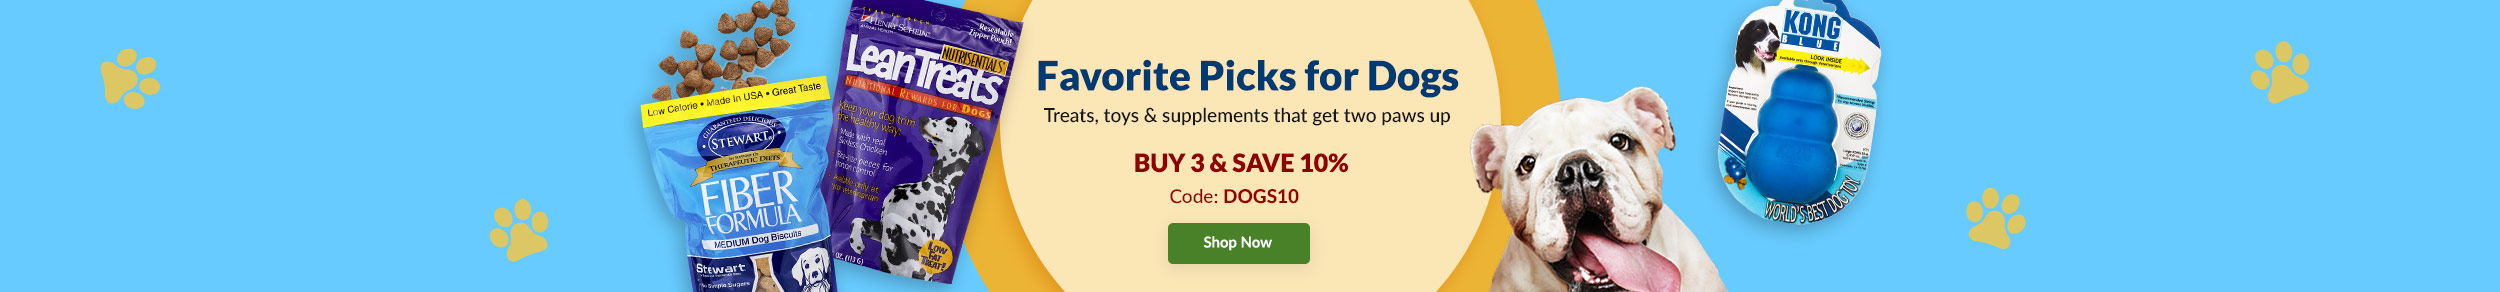 https://i3.pureformulas.net/images/static/Select-Products-for-Dogs_slide3_062218.jpg